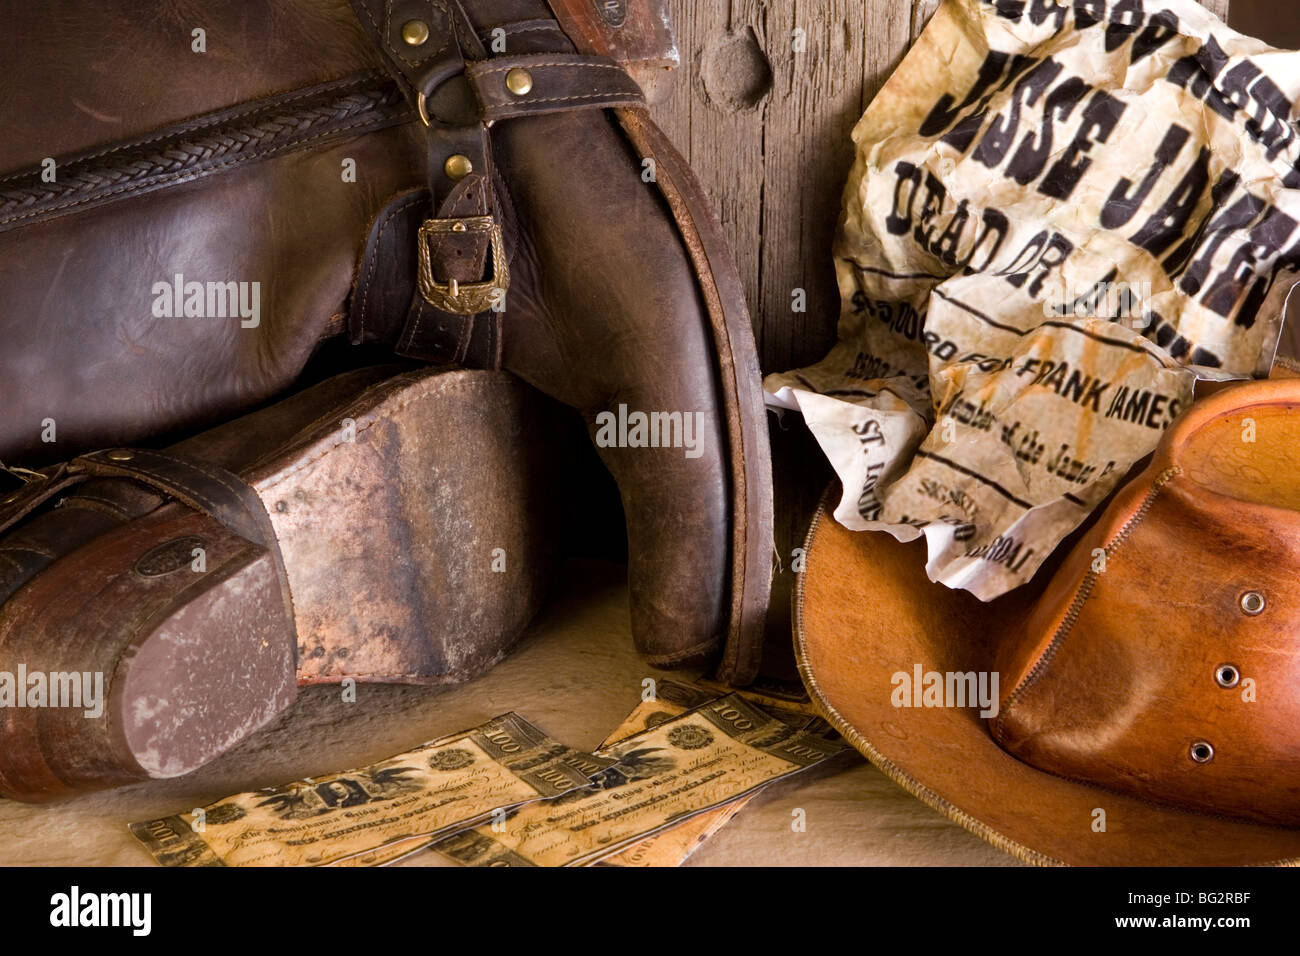 Boots and hat from wild west wanted outlaw - Stock Image